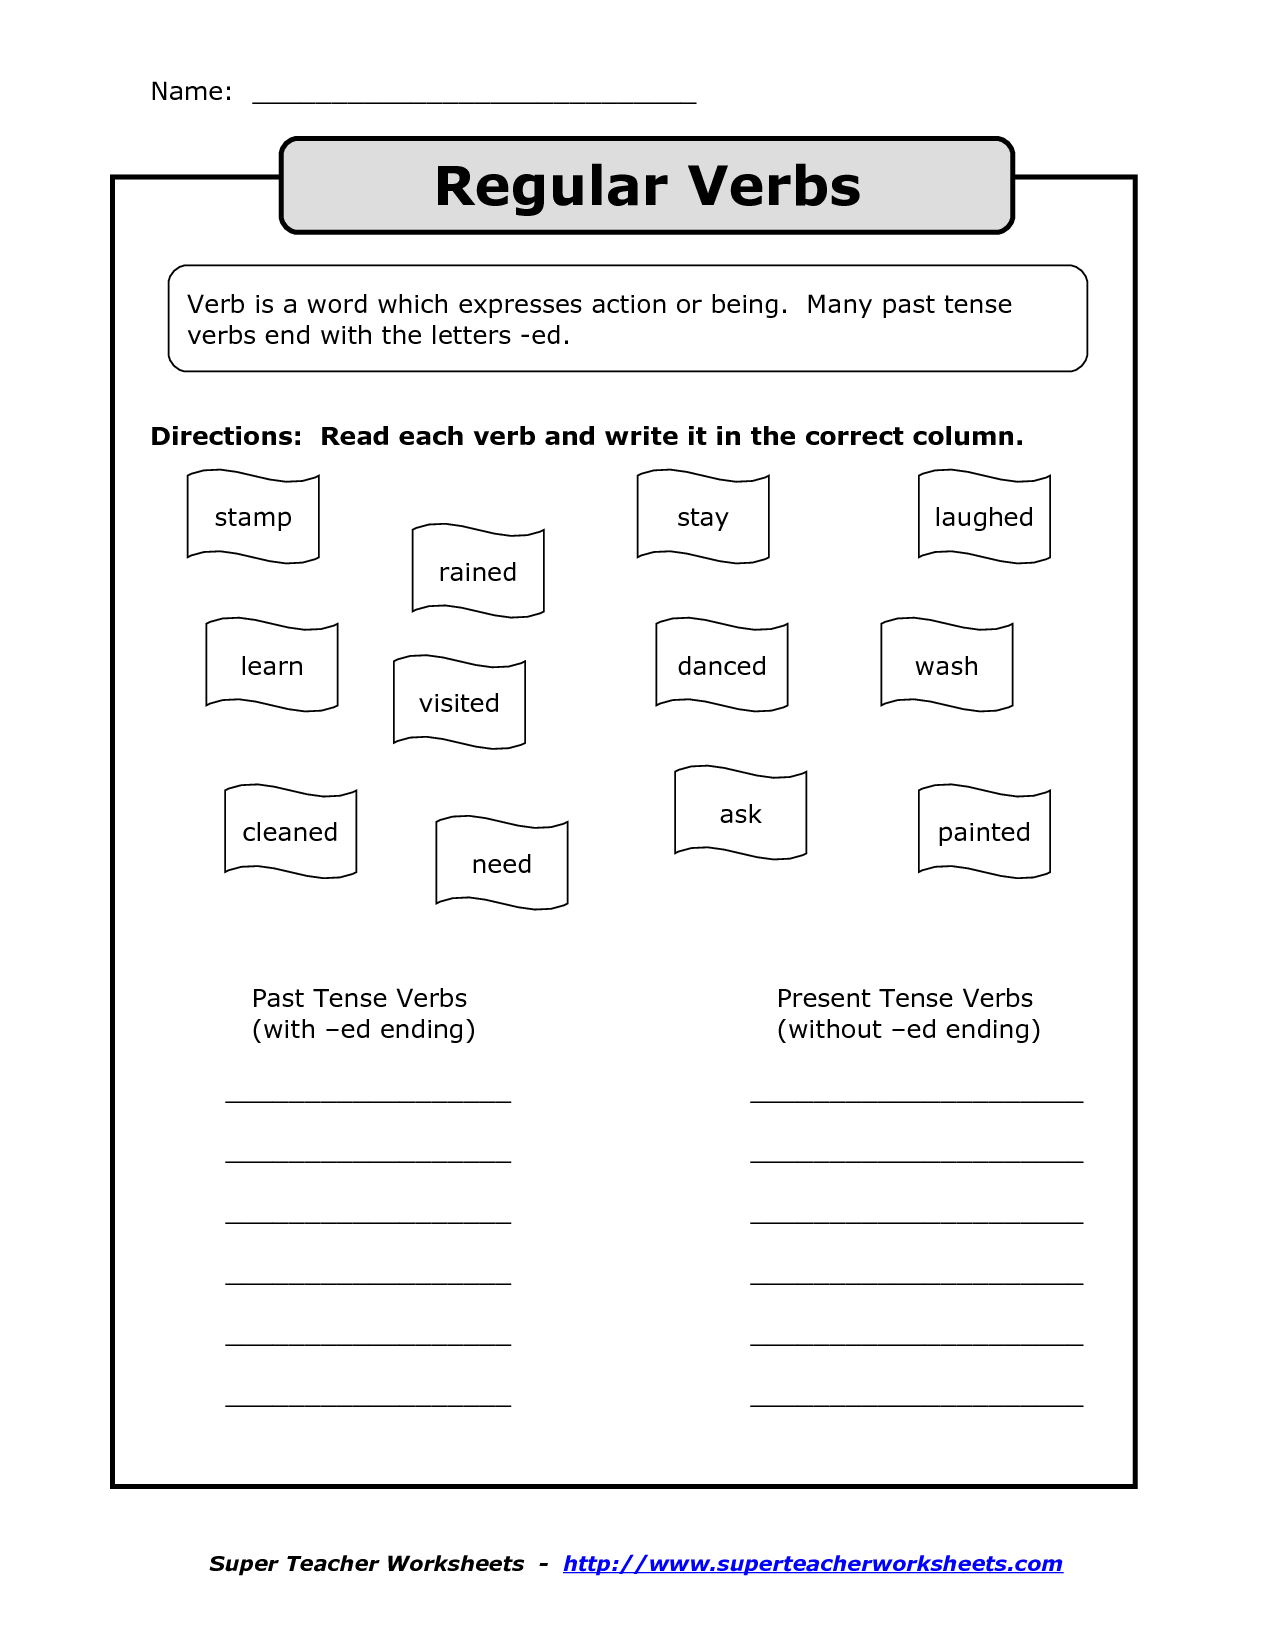 15 Best Images Of Spanish Regular Verbs Worksheet